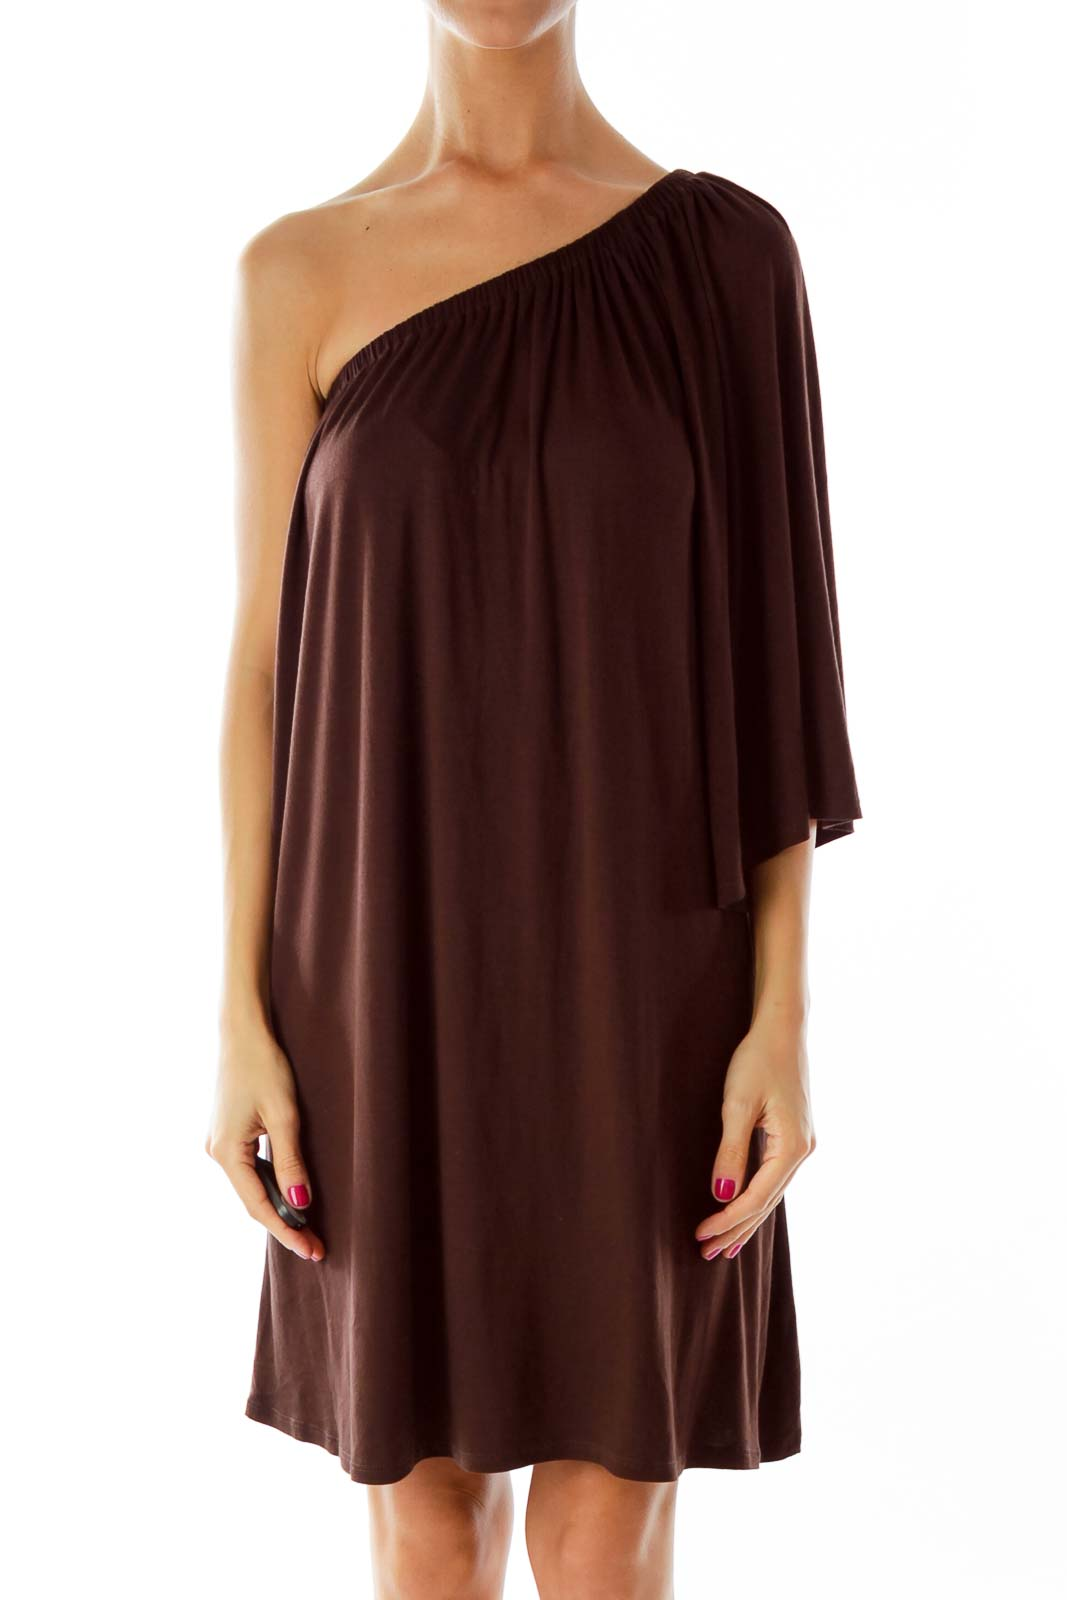 Brown One-Shoulder Cocktail Dress Front